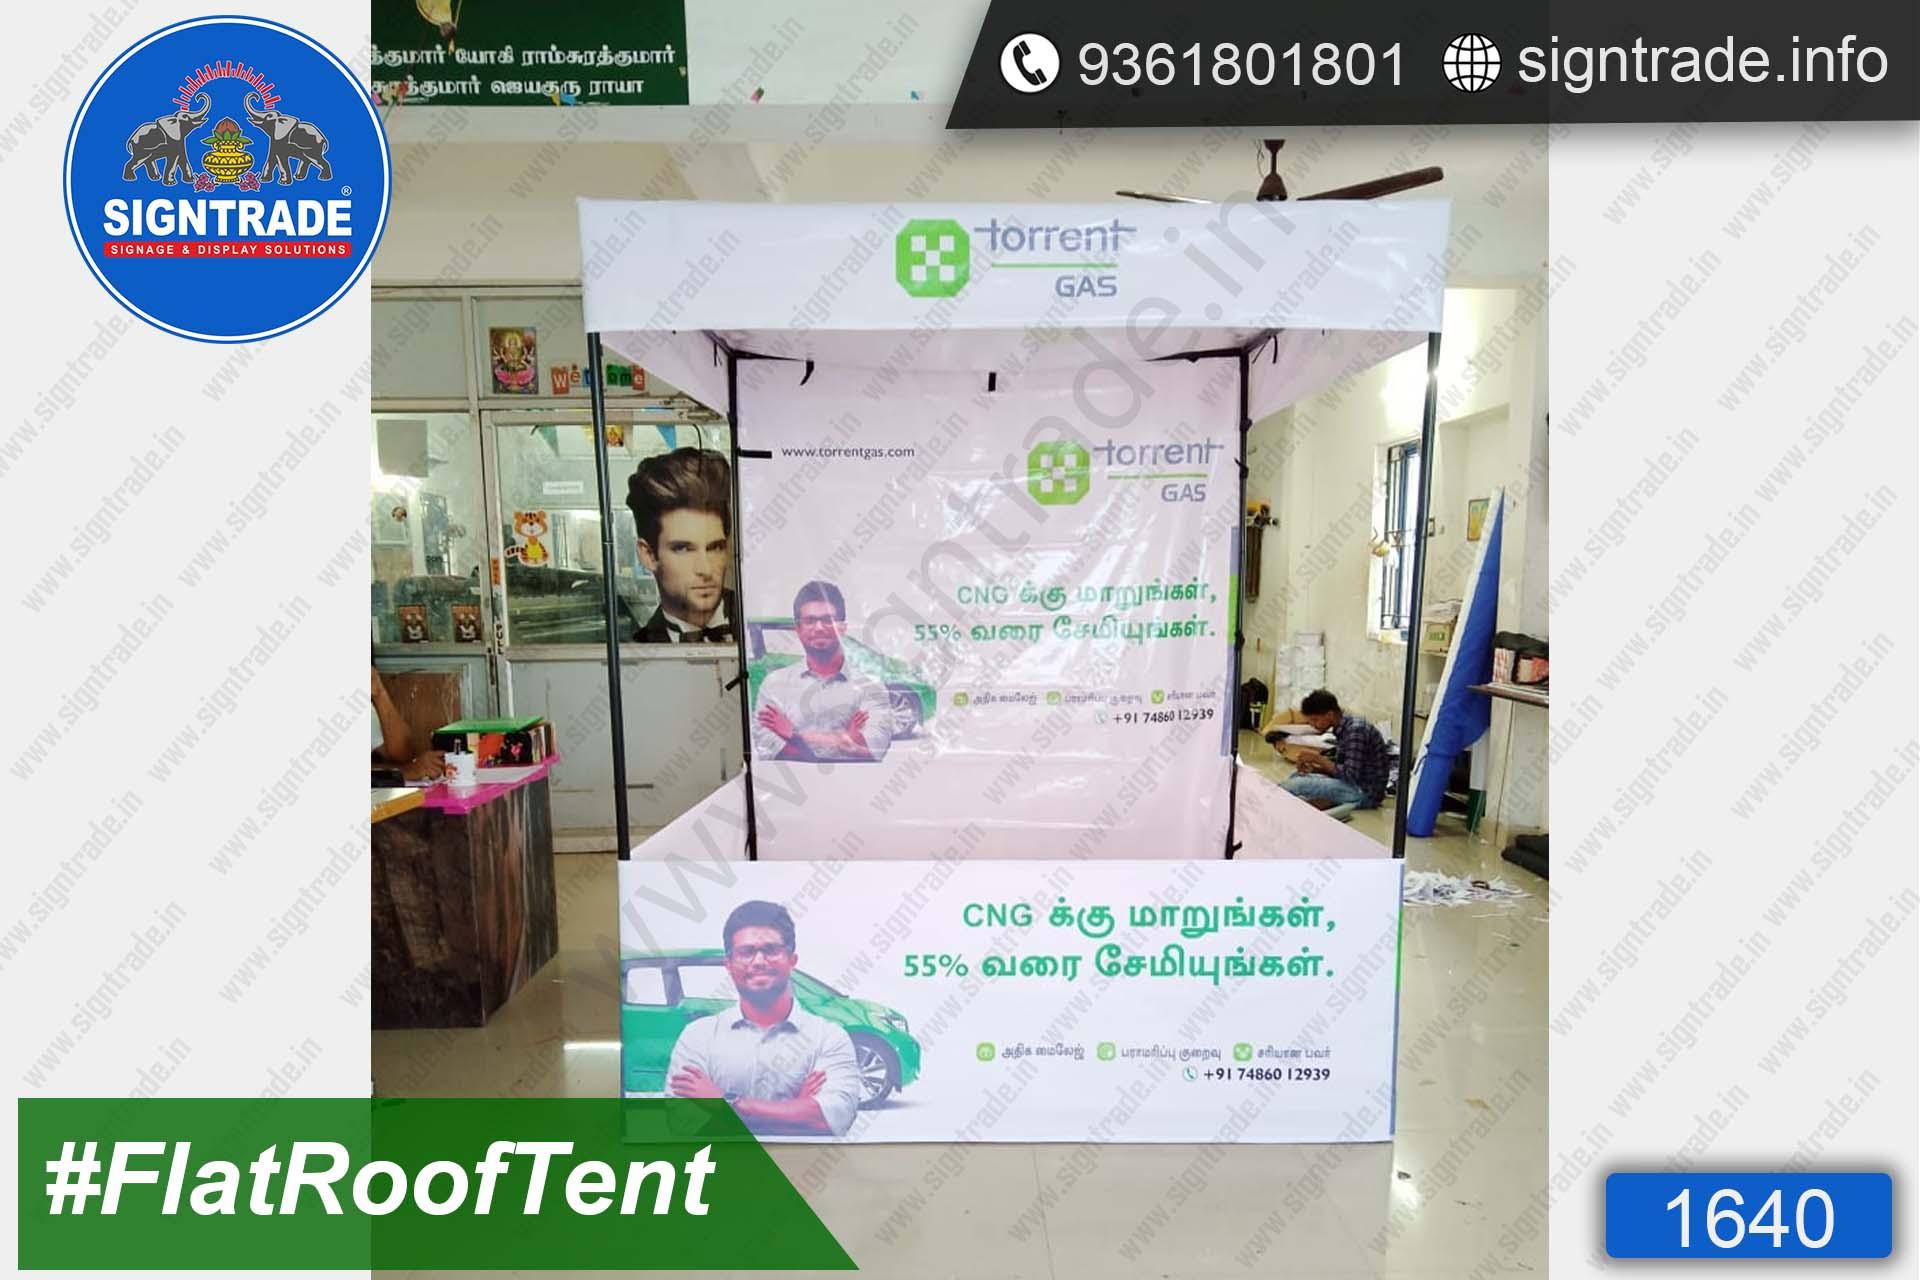 Torrent Gas- Canopy Tent - SIGNTRADE - Promotional Canopy Tent Manufacturers in Chennai